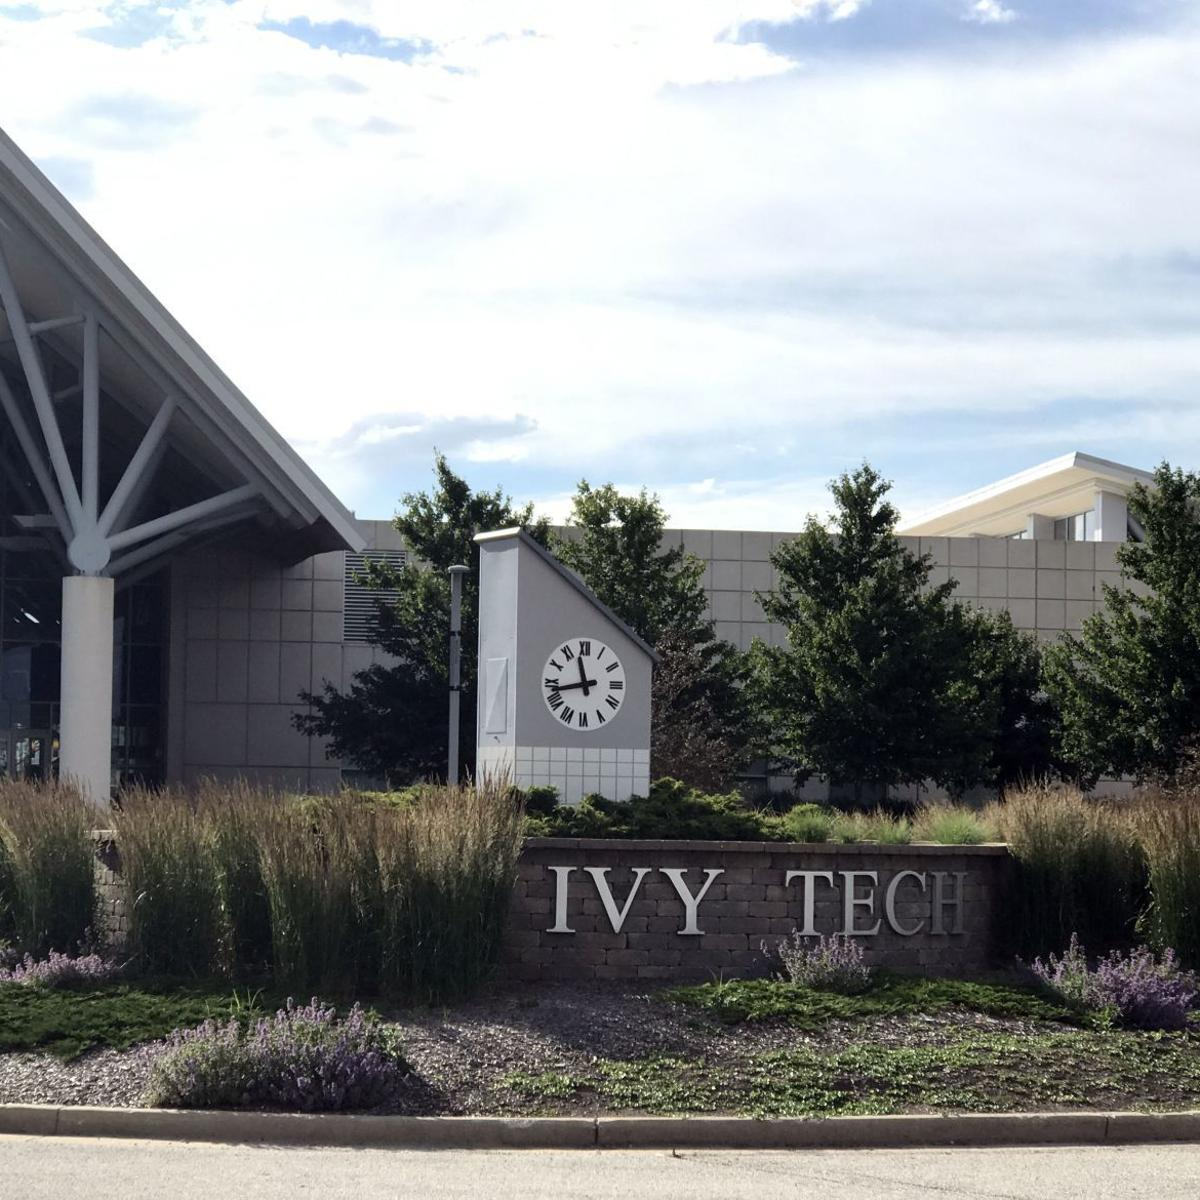 Ivy Tech To Close All Buildings Friday In Preventative Covid 19 Measure Education Nwitimes Com